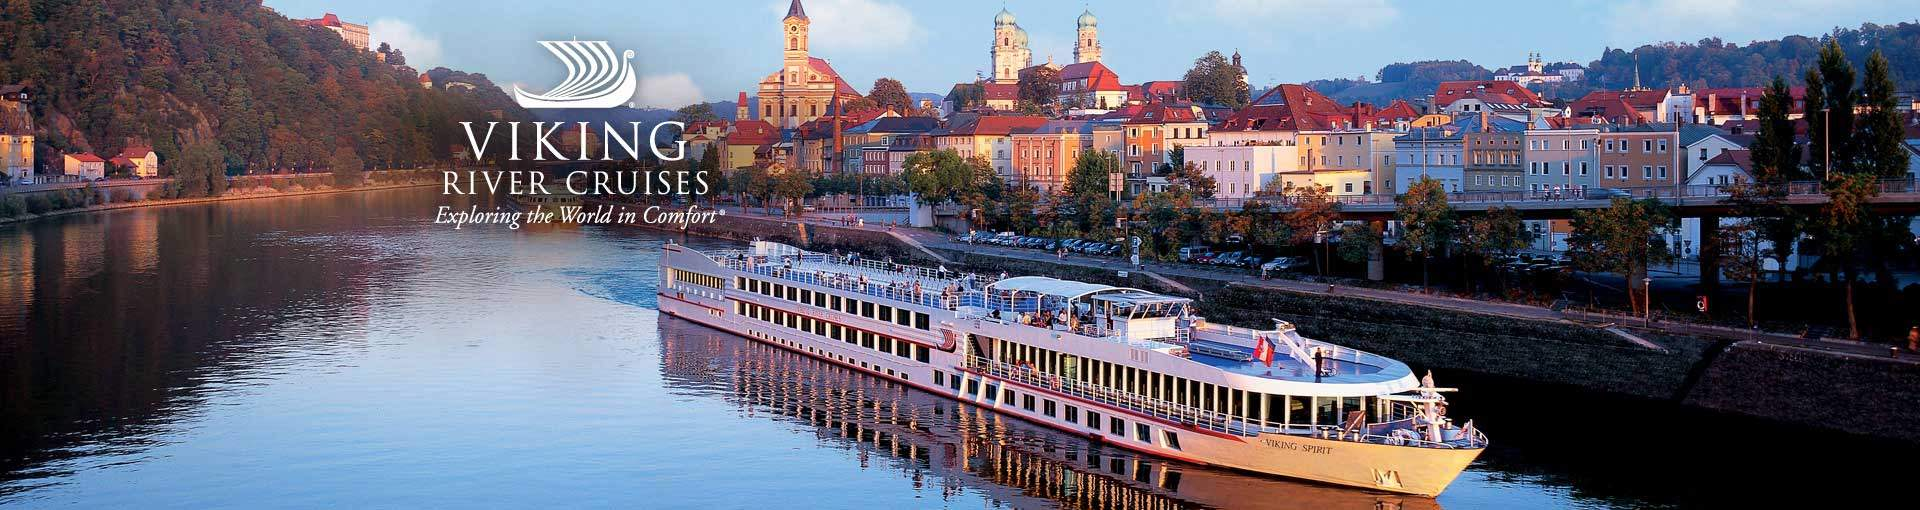 Viking River Cruises 2019 And 2020 Cruise Deals